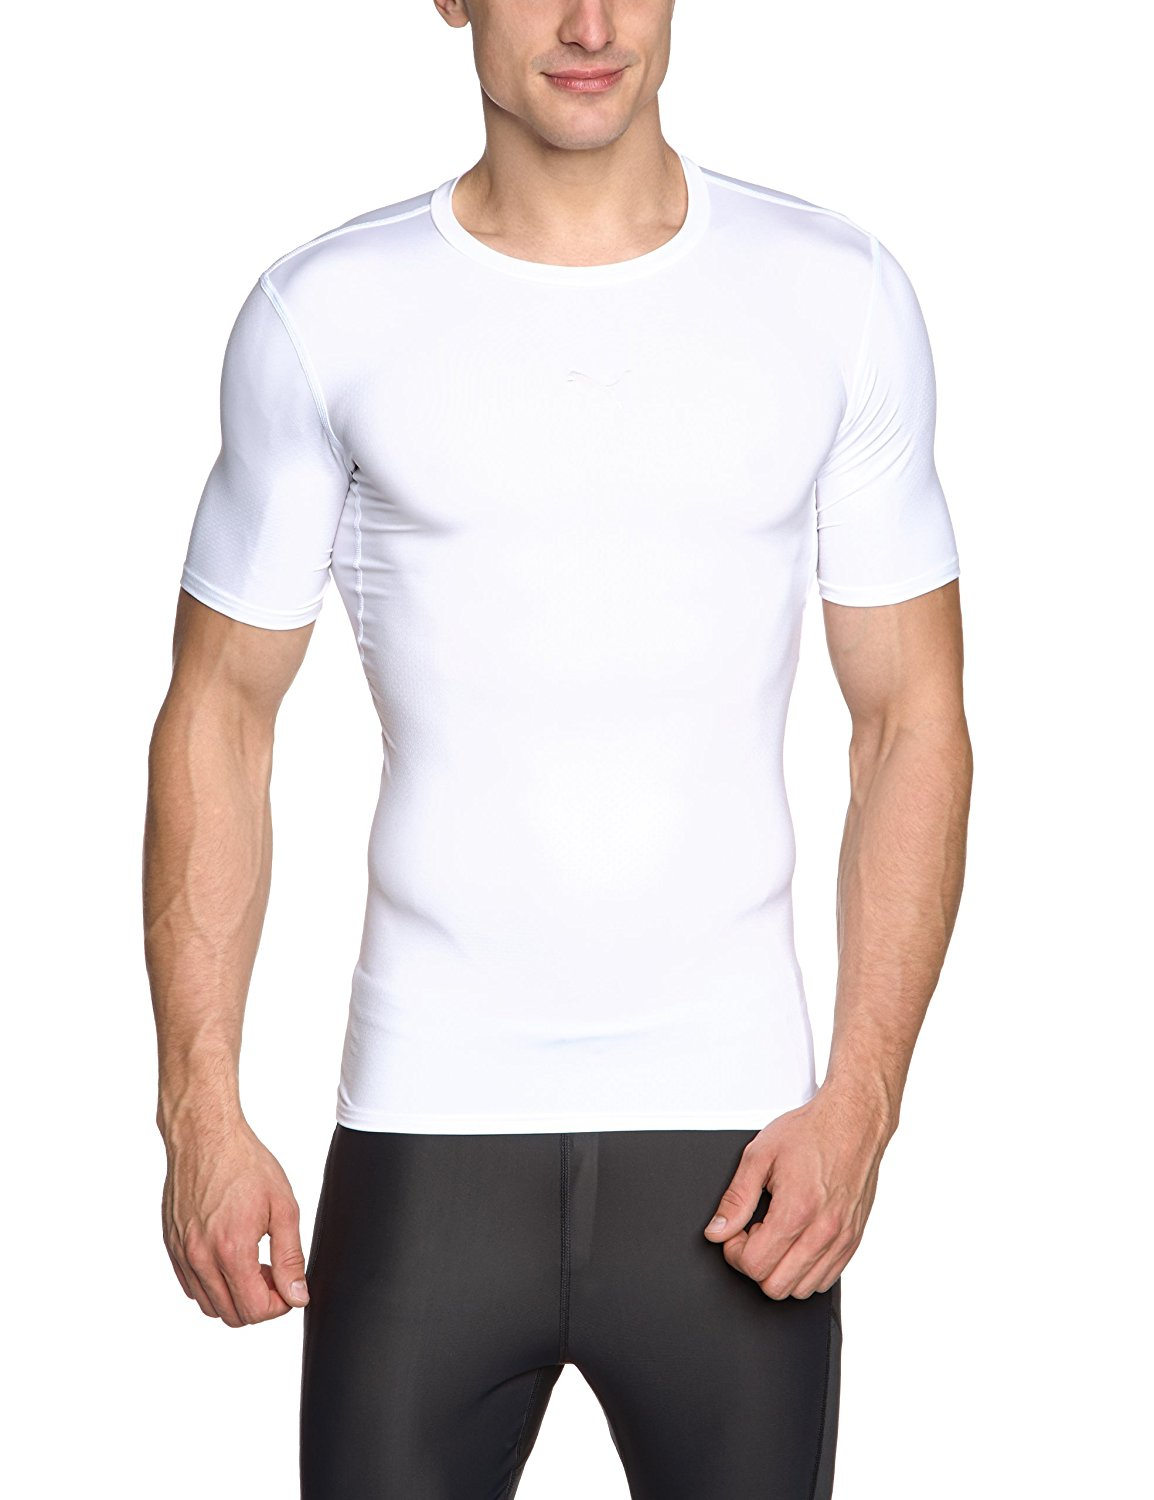 2dfbebded890 Puma PB Core Tee Shirt Baselayer White Short or Long Sleeve